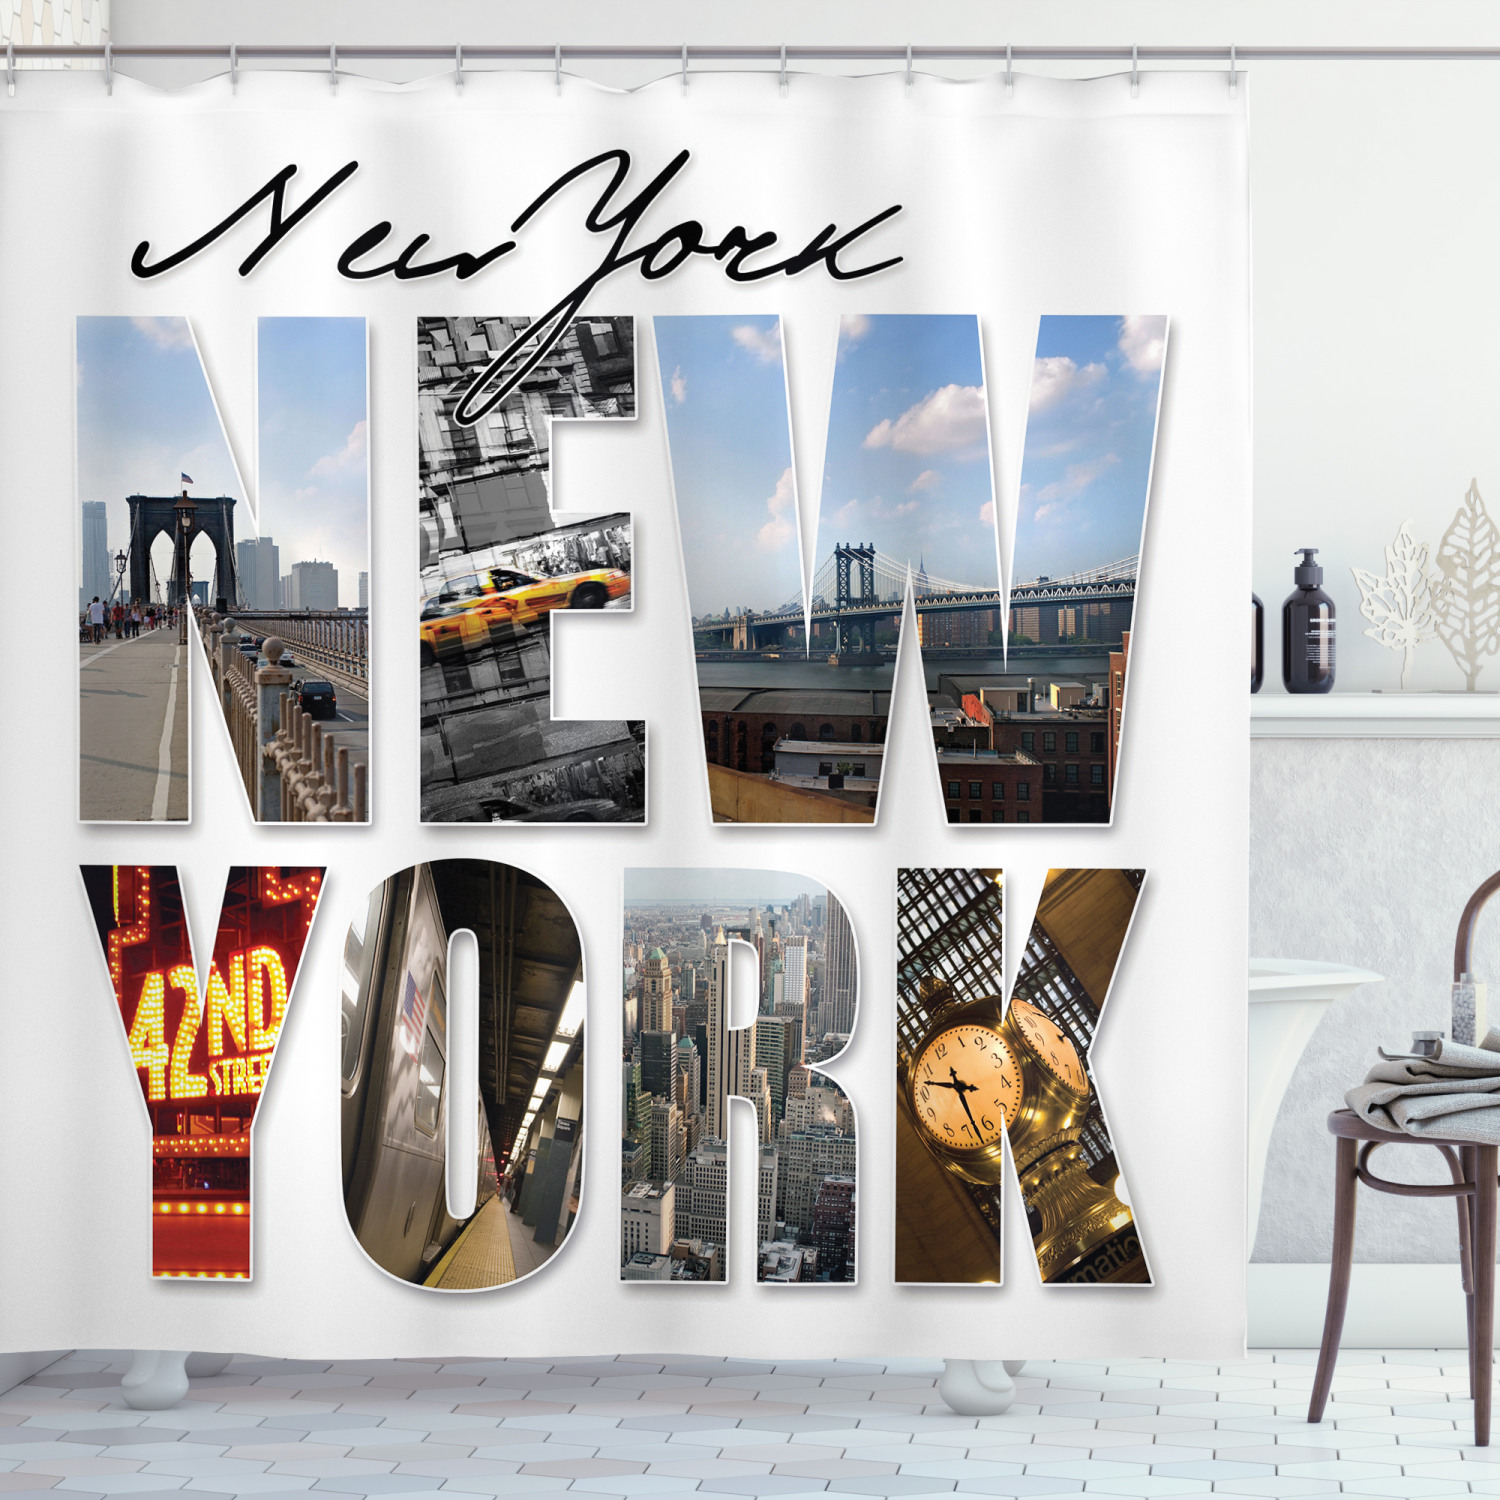 nyc decor shower curtain set new york city themed collage featuring with different areas of the big apple manhattan scenery bathroom accessories